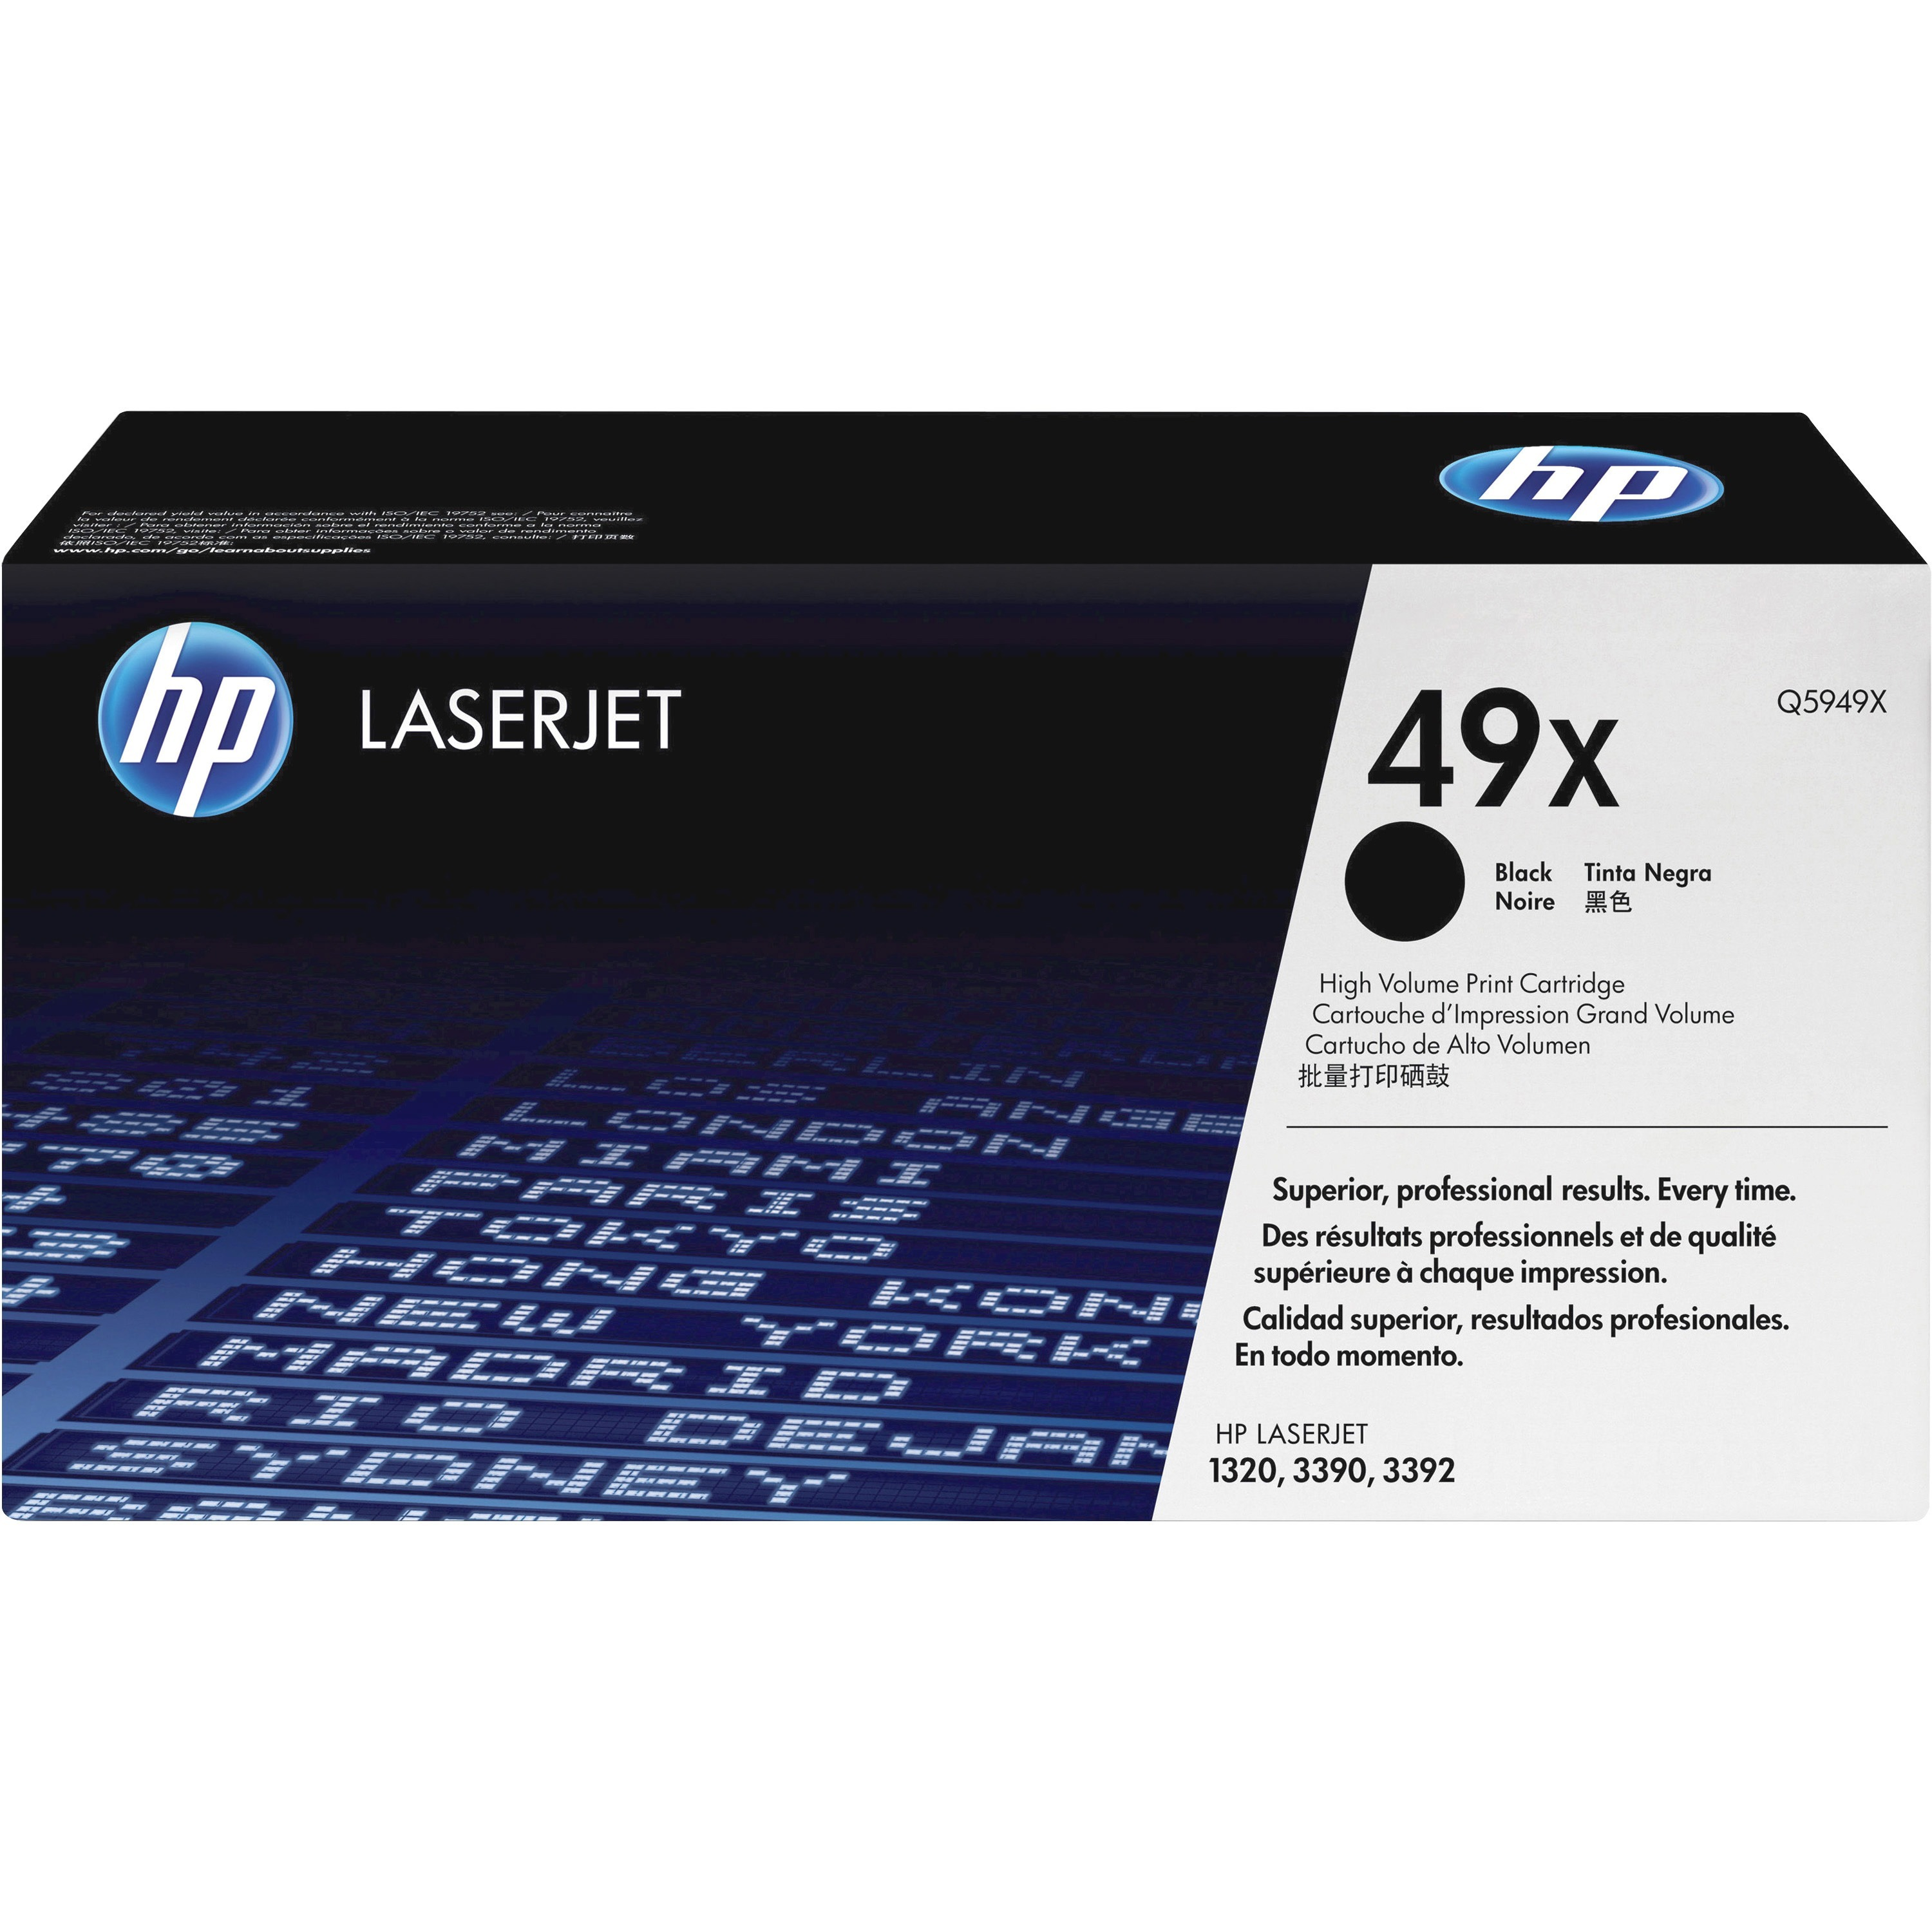 HP 49X Toner Cartridge - Black - Laser - 6000 Page - 1 Each